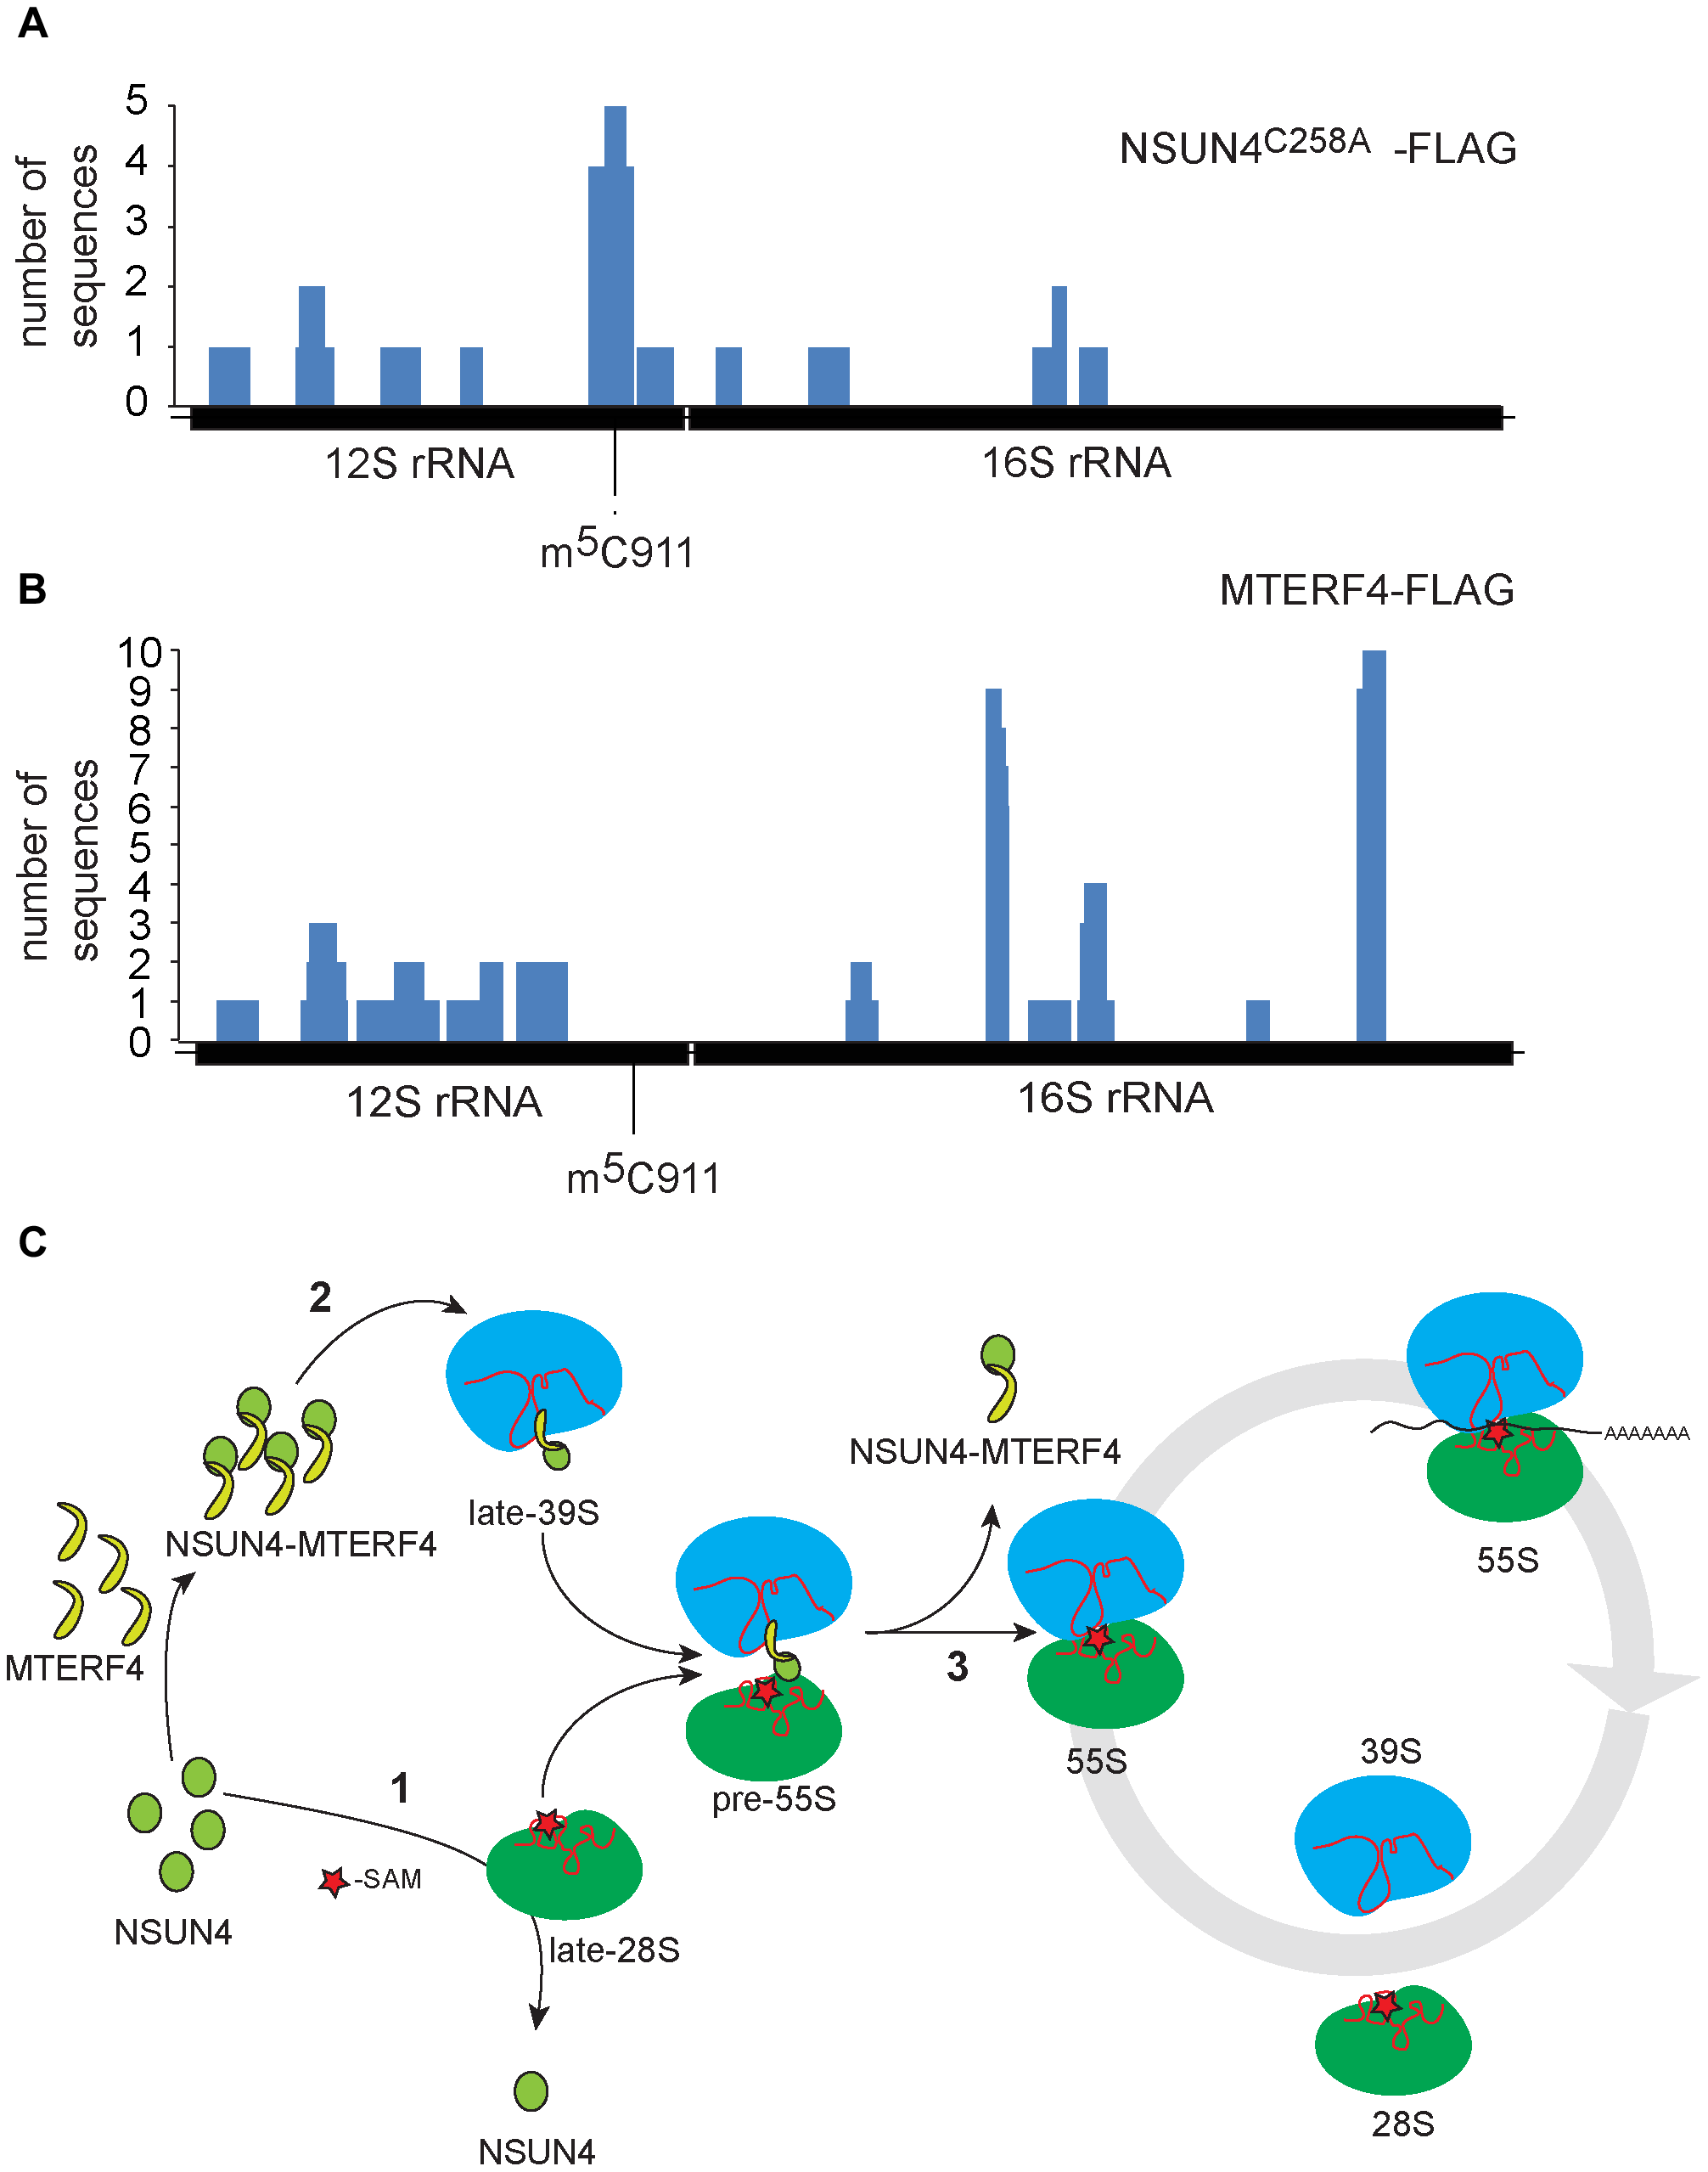 rRNA binding by NSUN4 and MTERF4 and model of the role of the NSUN4/MTERF4 complex in regulation of ribosome assembly.